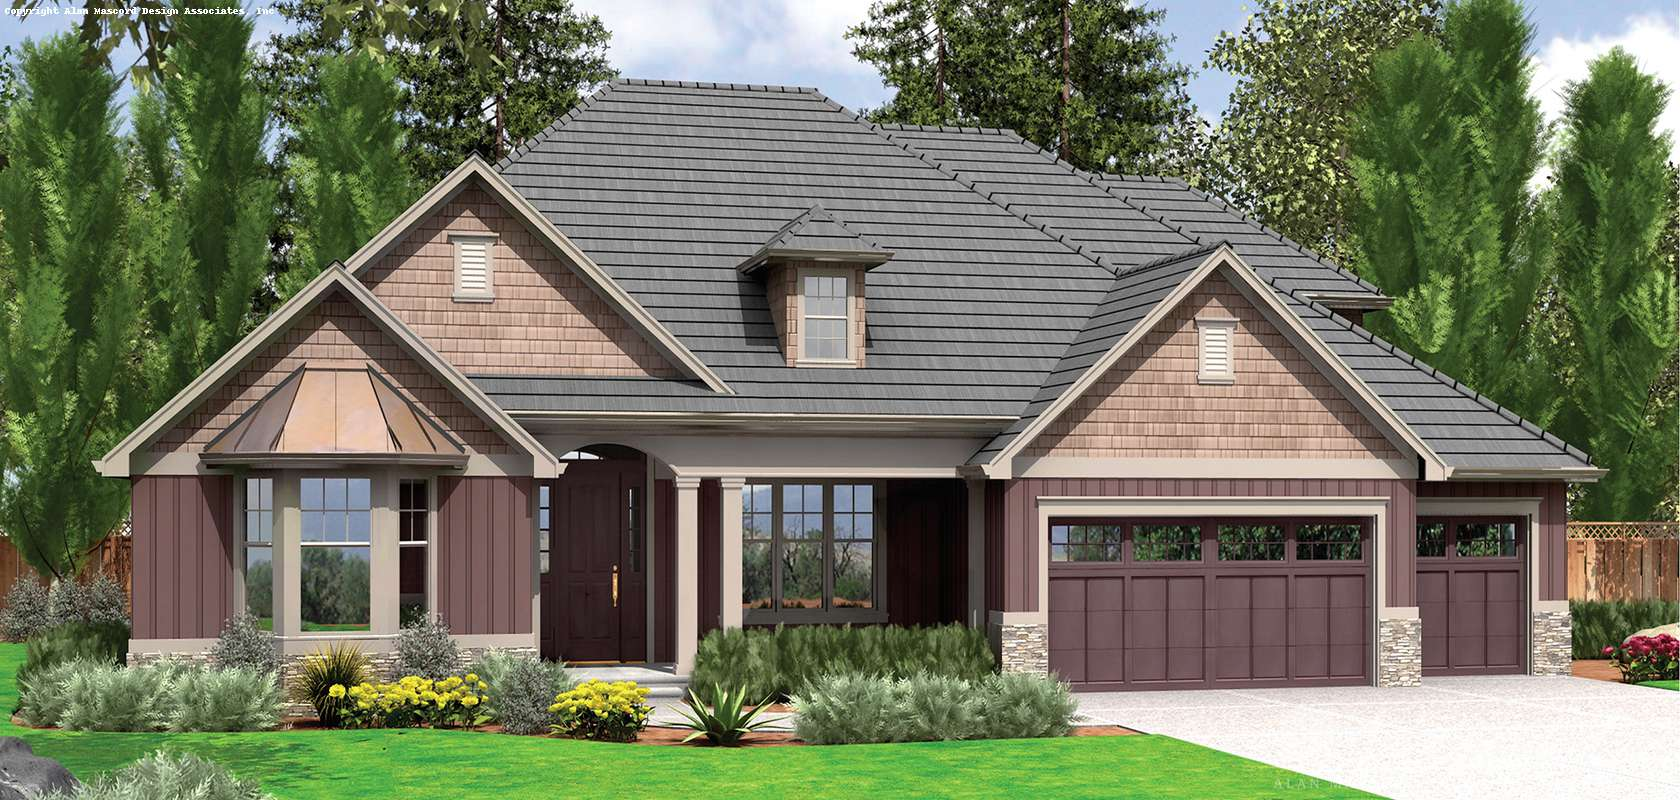 Mascord House Plan B22157A: The Ravenwood